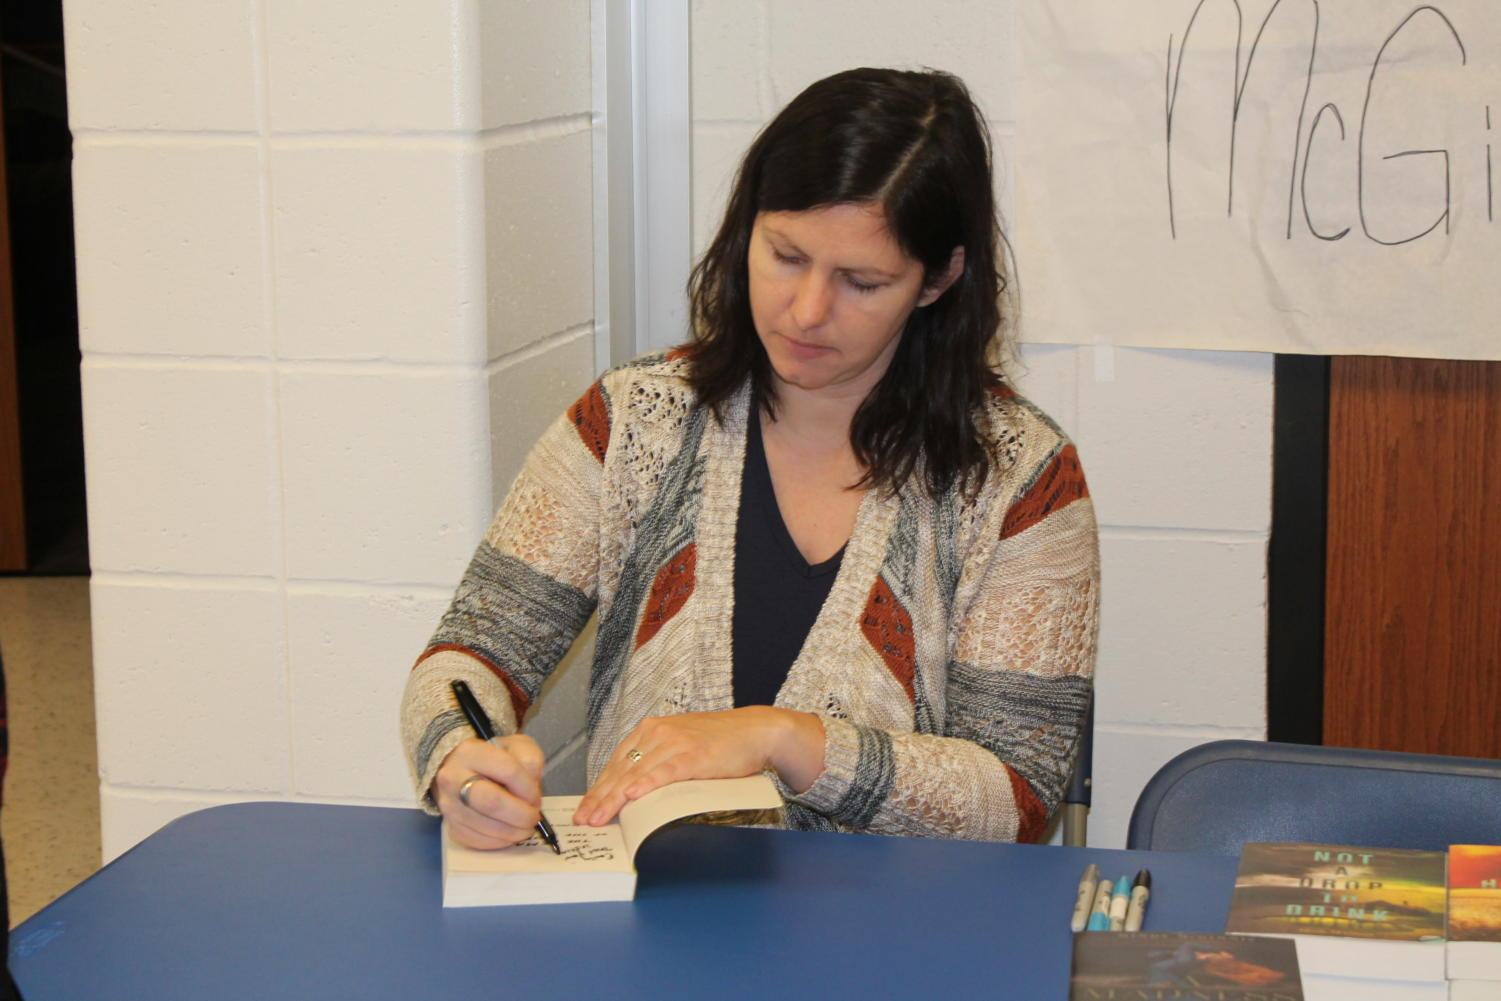 Mindy McGinnis signs one of her books for an LHS student.